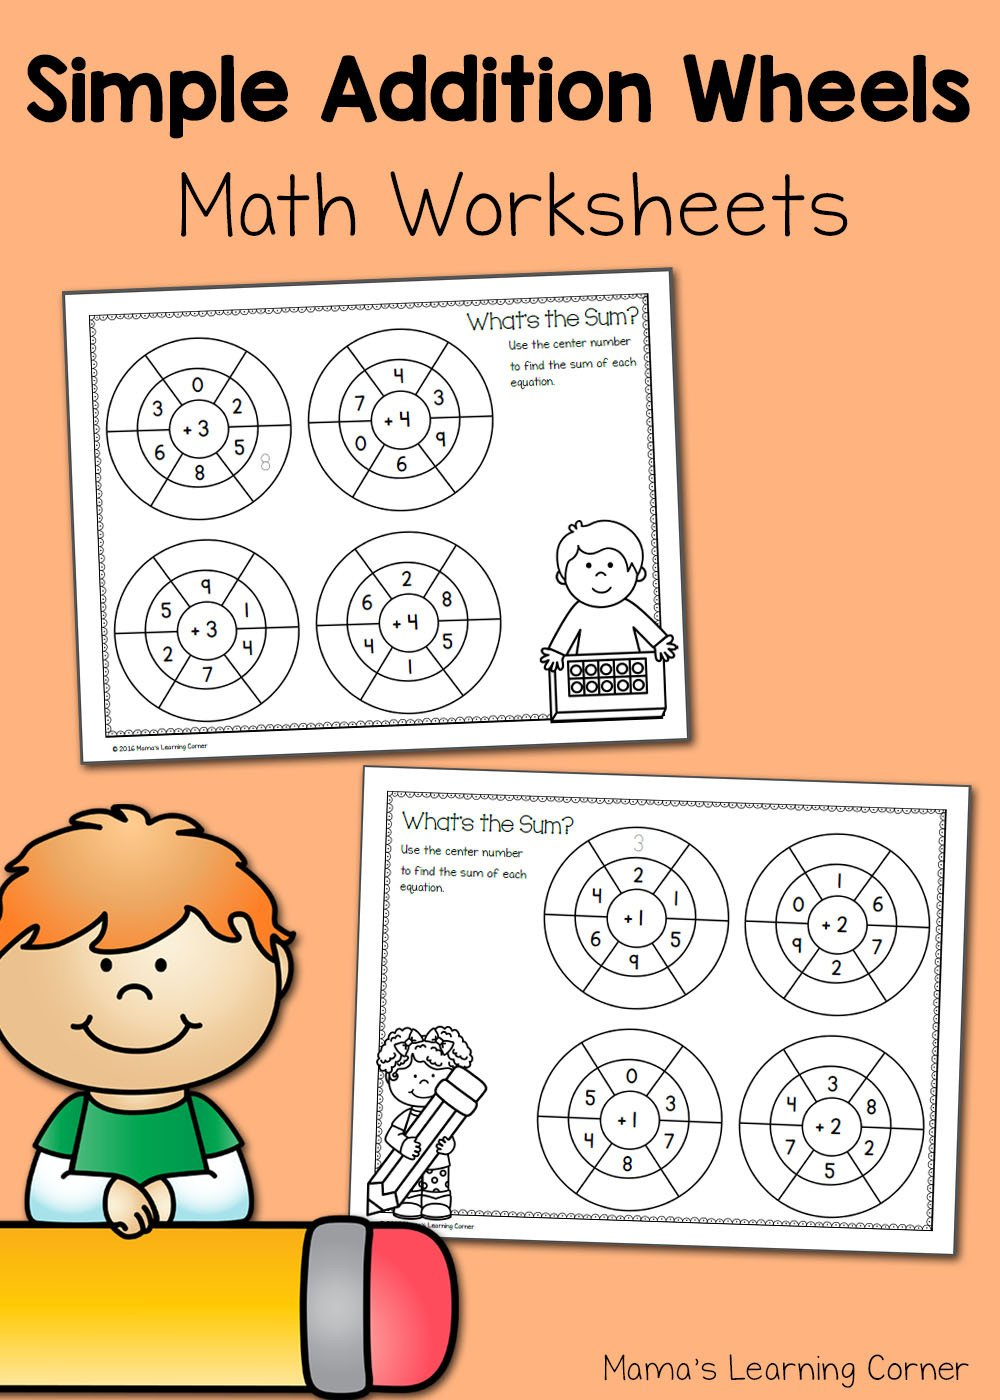 Simple Addition Worksheets with Pictures Simple Addition Wheels Math Worksheets Mamas Learning Corner